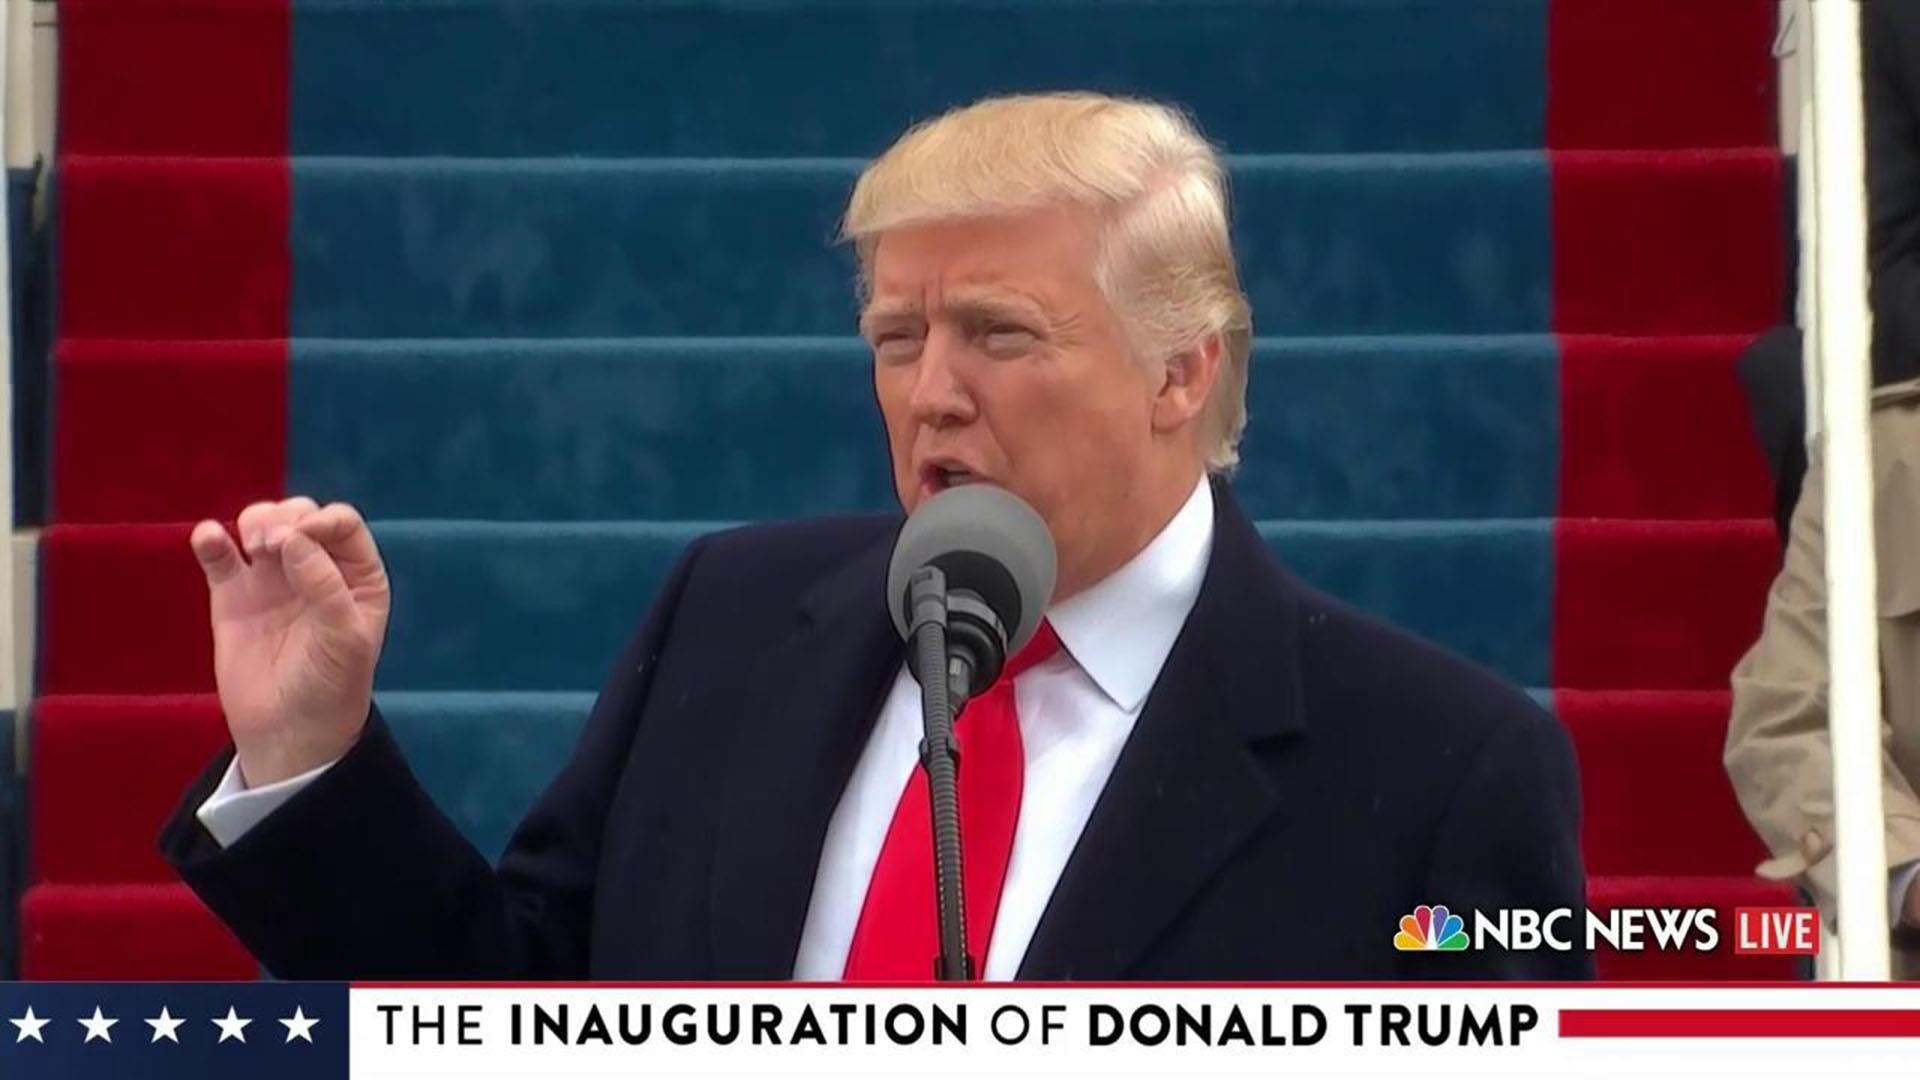 Trump: 'Together we will determine the...